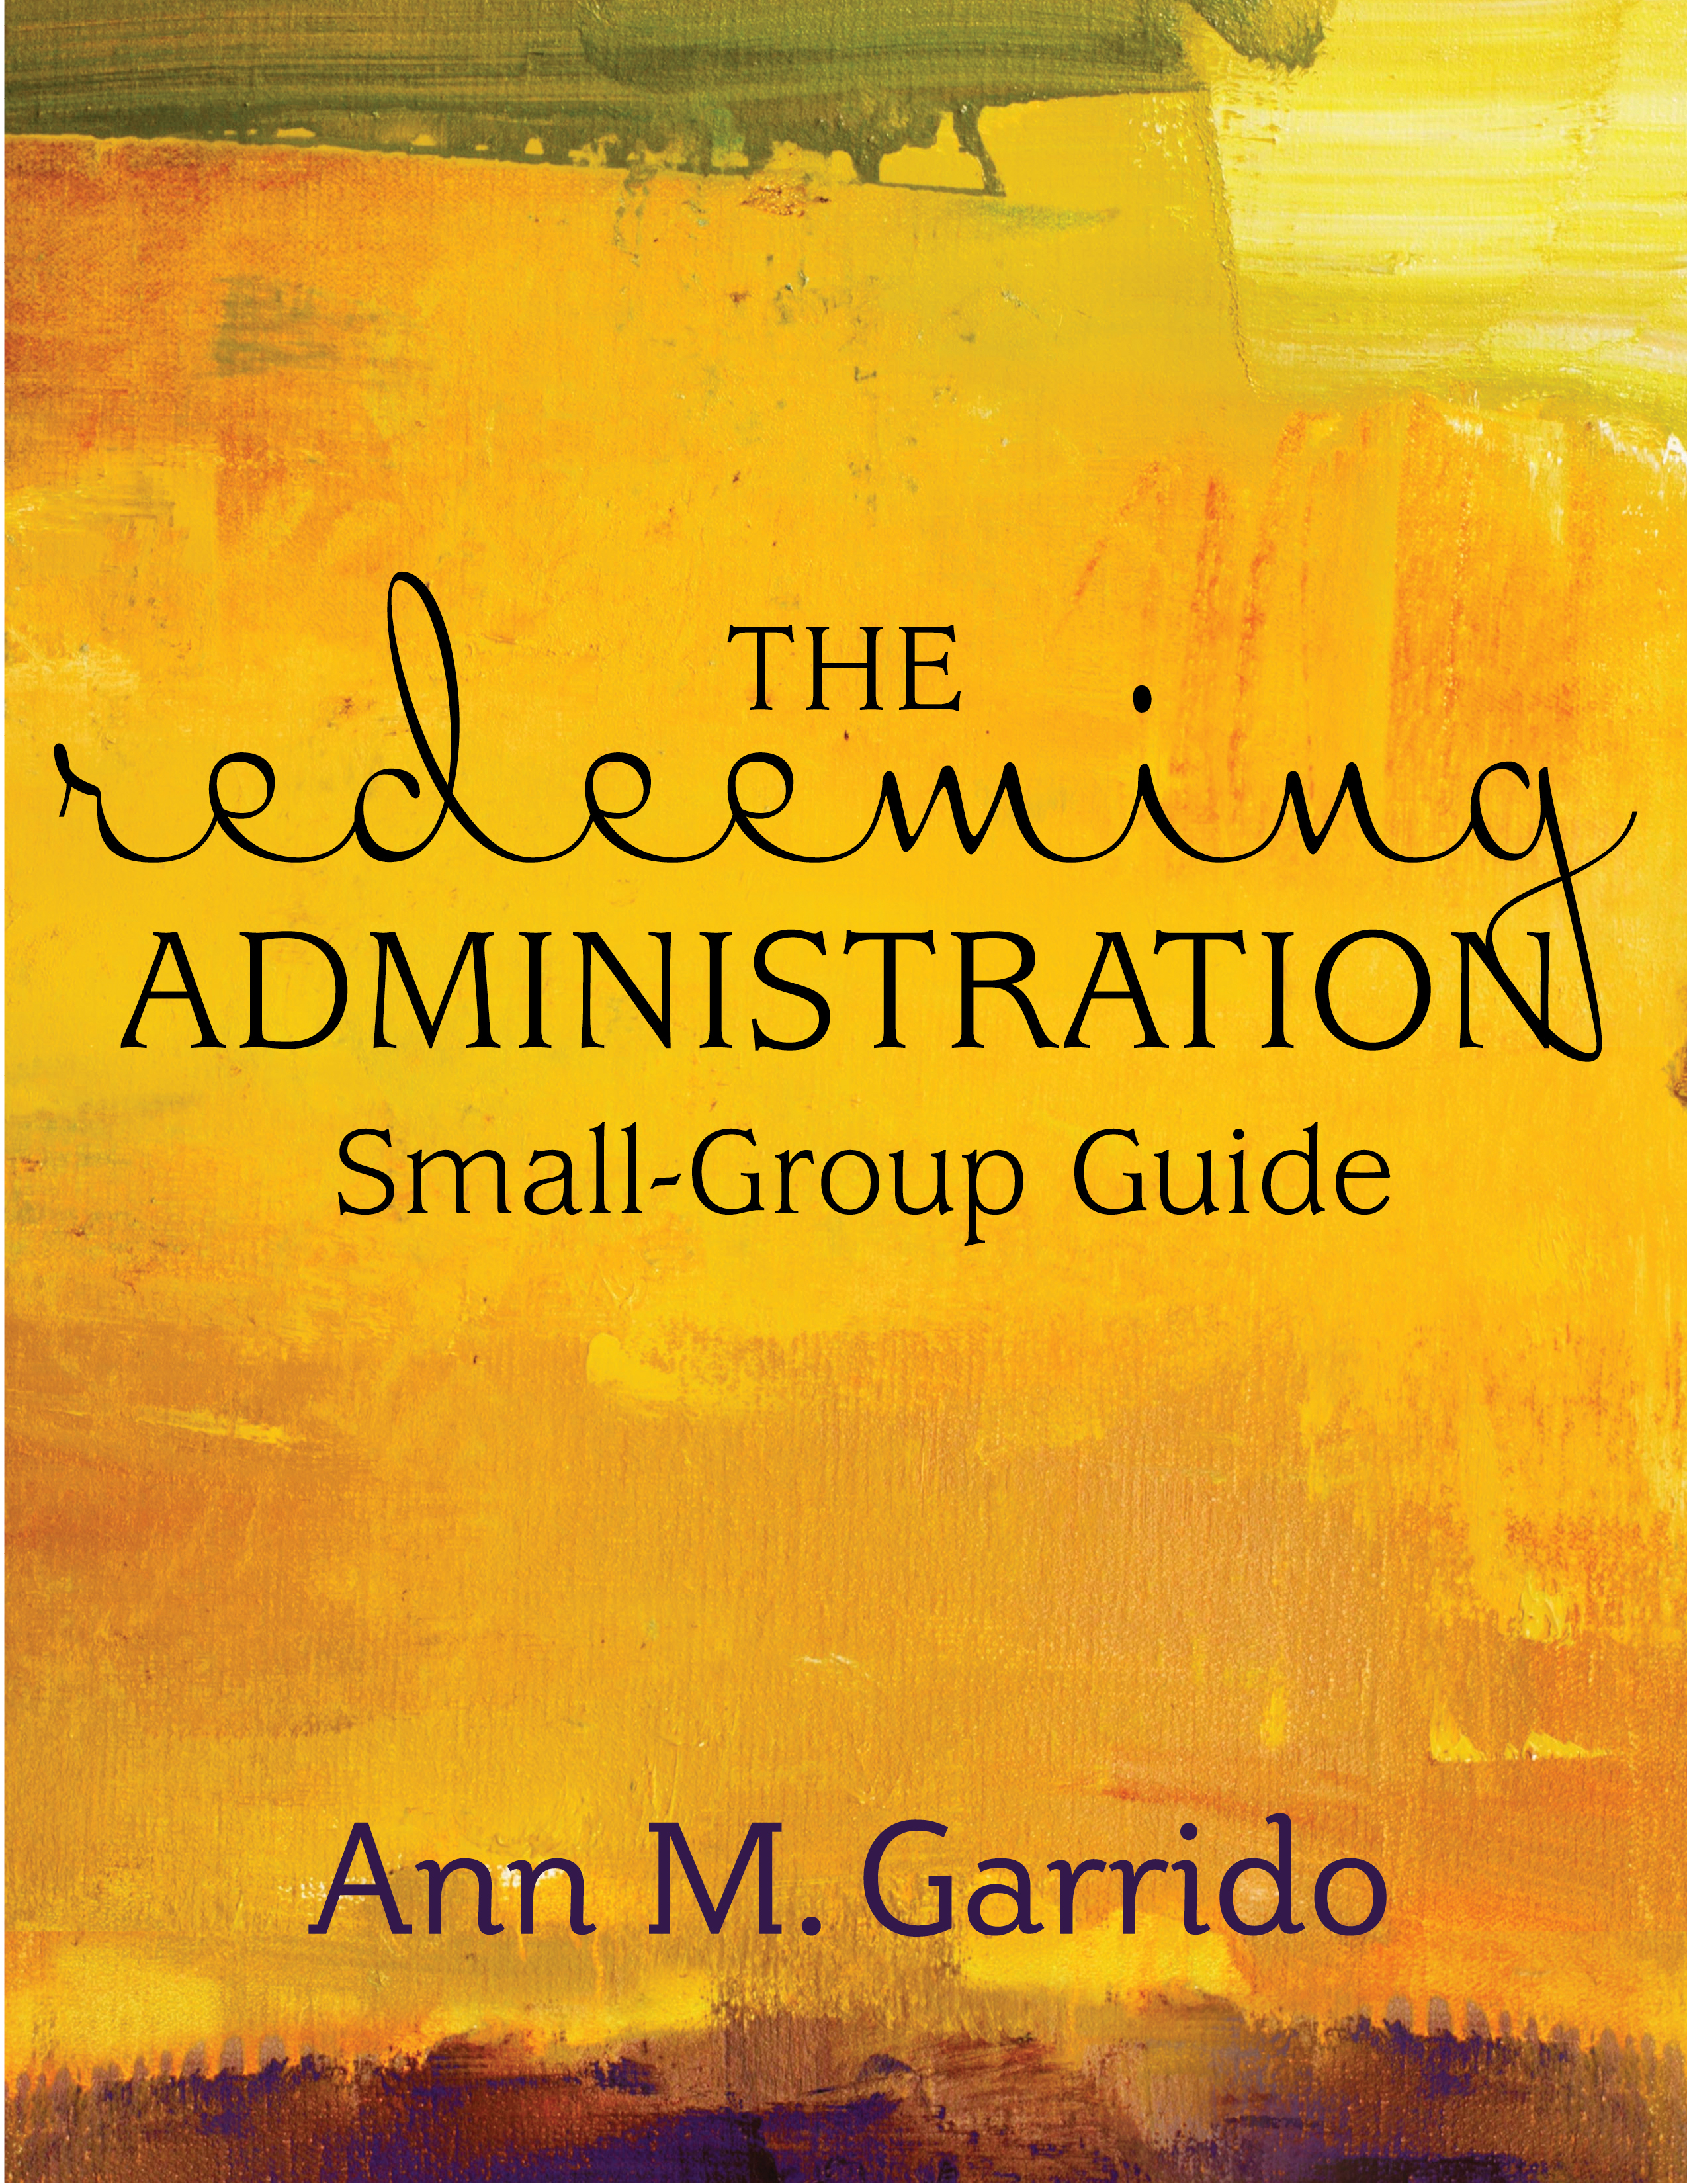 The Redeeming Administration Small-Group Guide